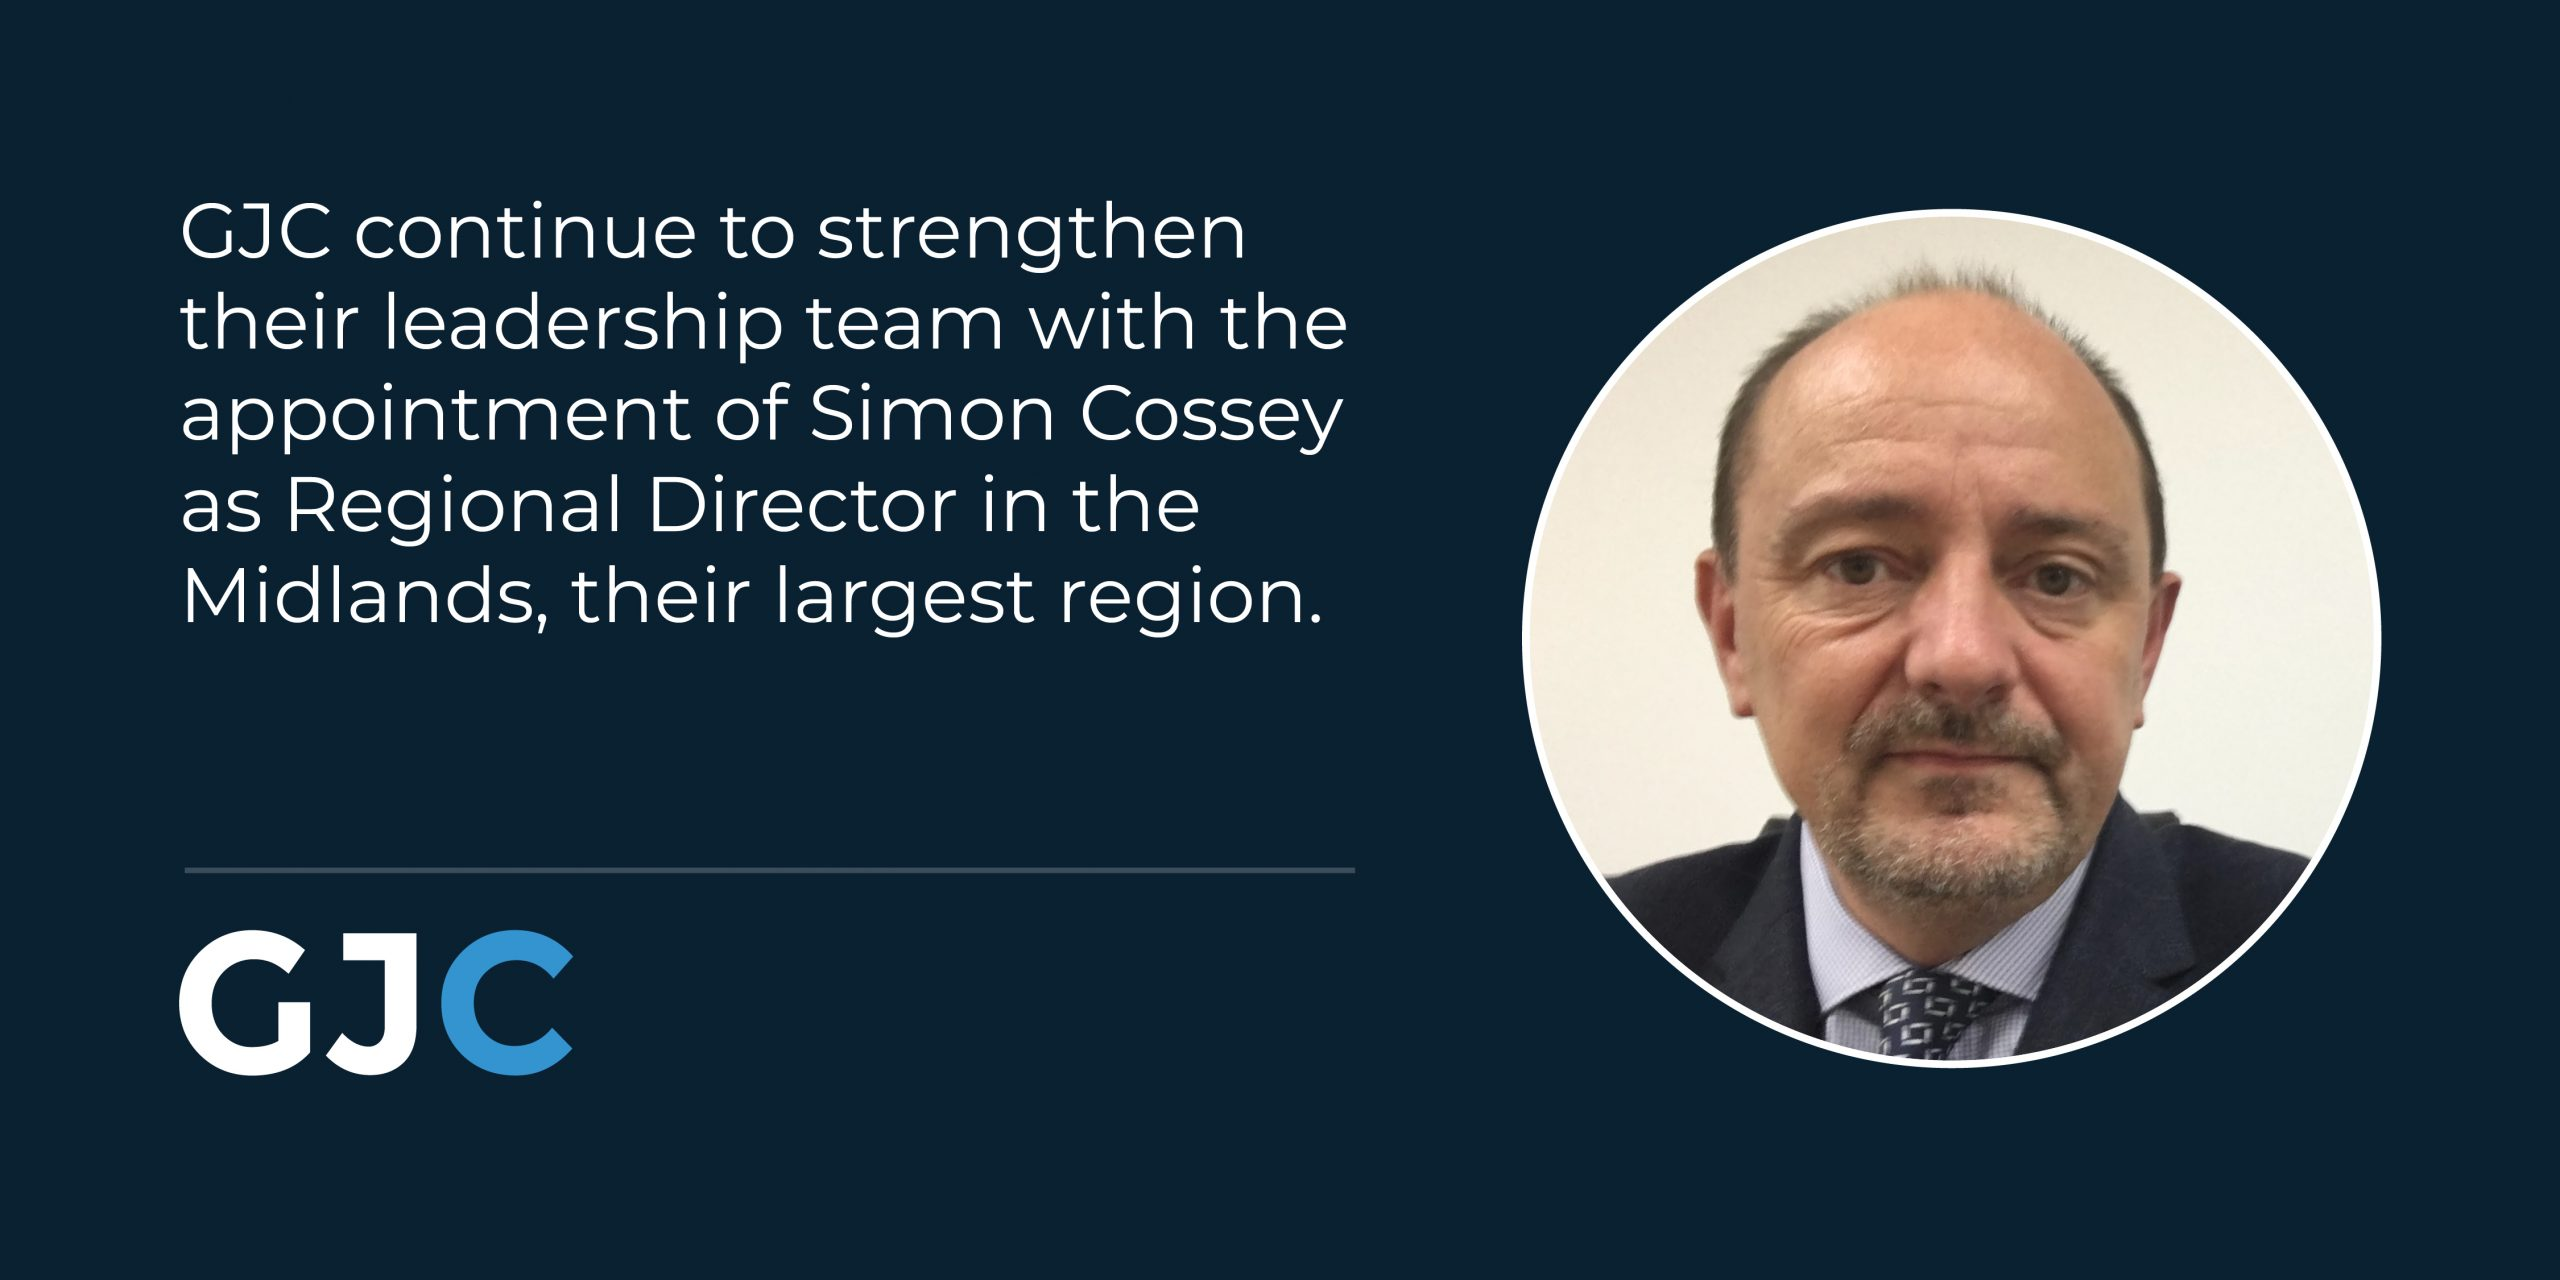 GJC continue to strengthen their leadership team with the appointment of Simon Cossey as Regional Director in the Midlands, their largest region